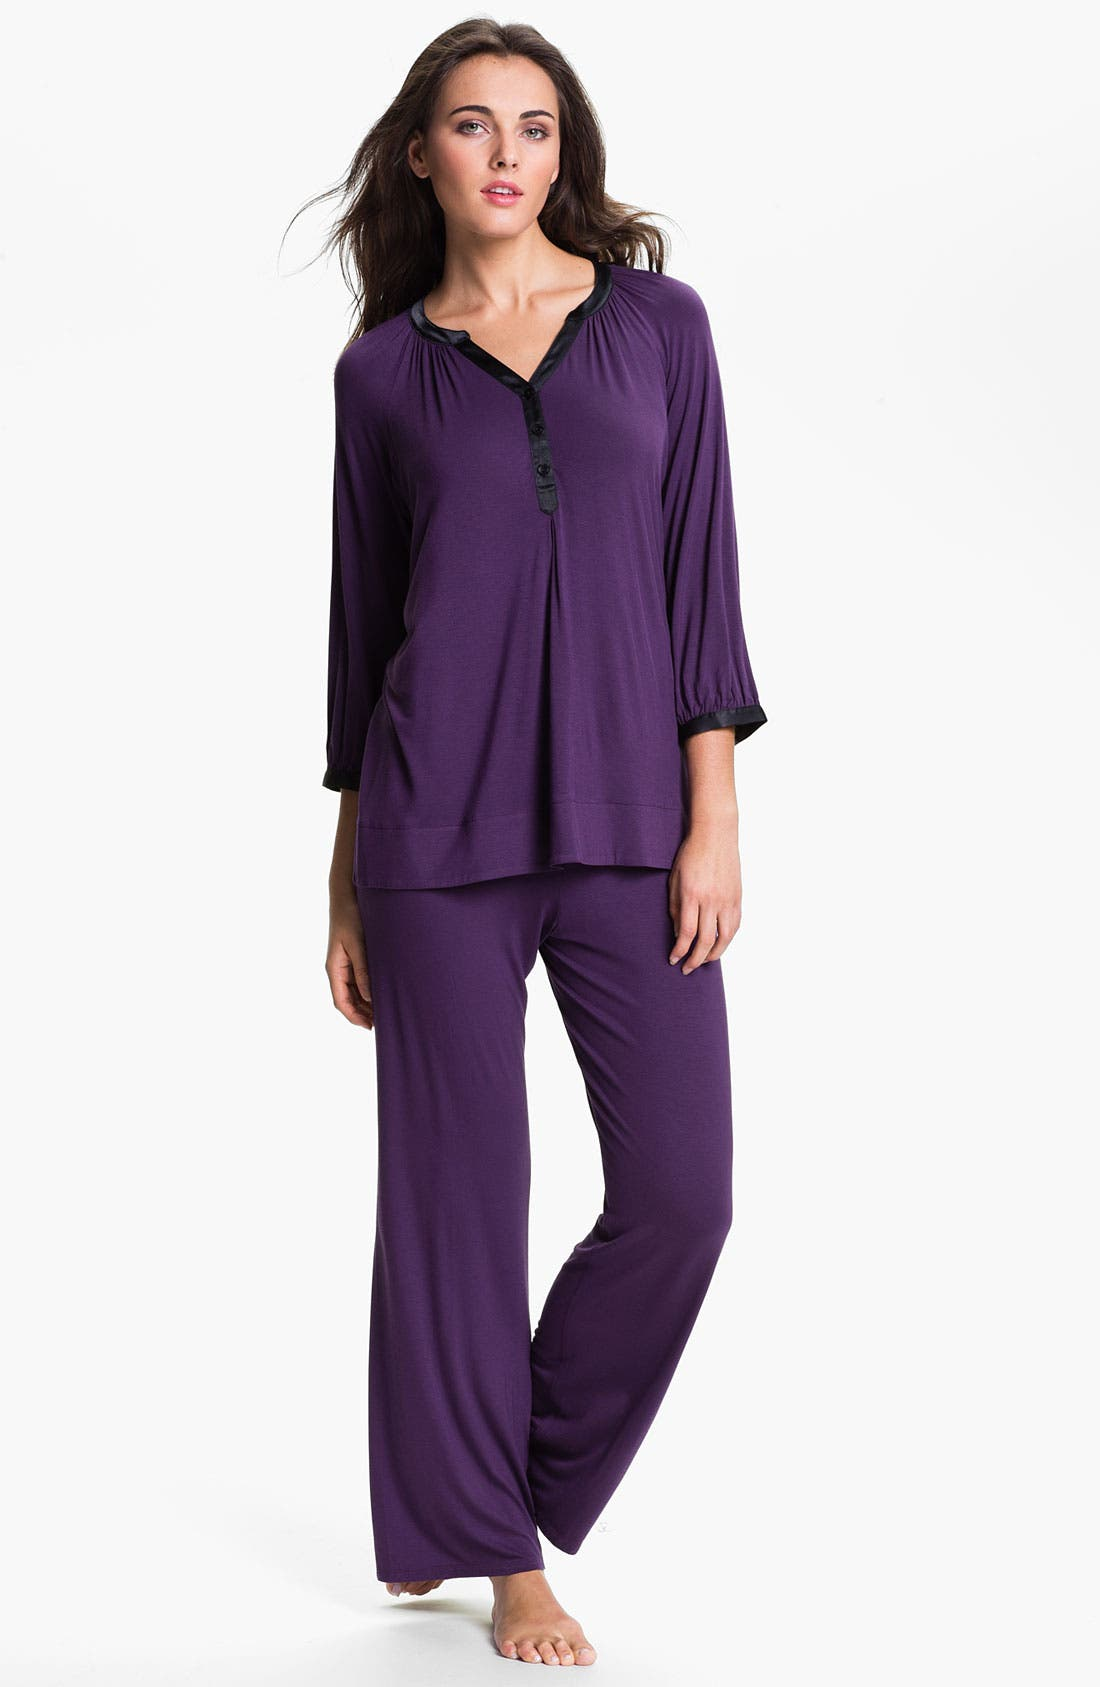 Alternate Image 1 Selected - Midnight by Carole Hochman 'Timeless Love' Pajamas